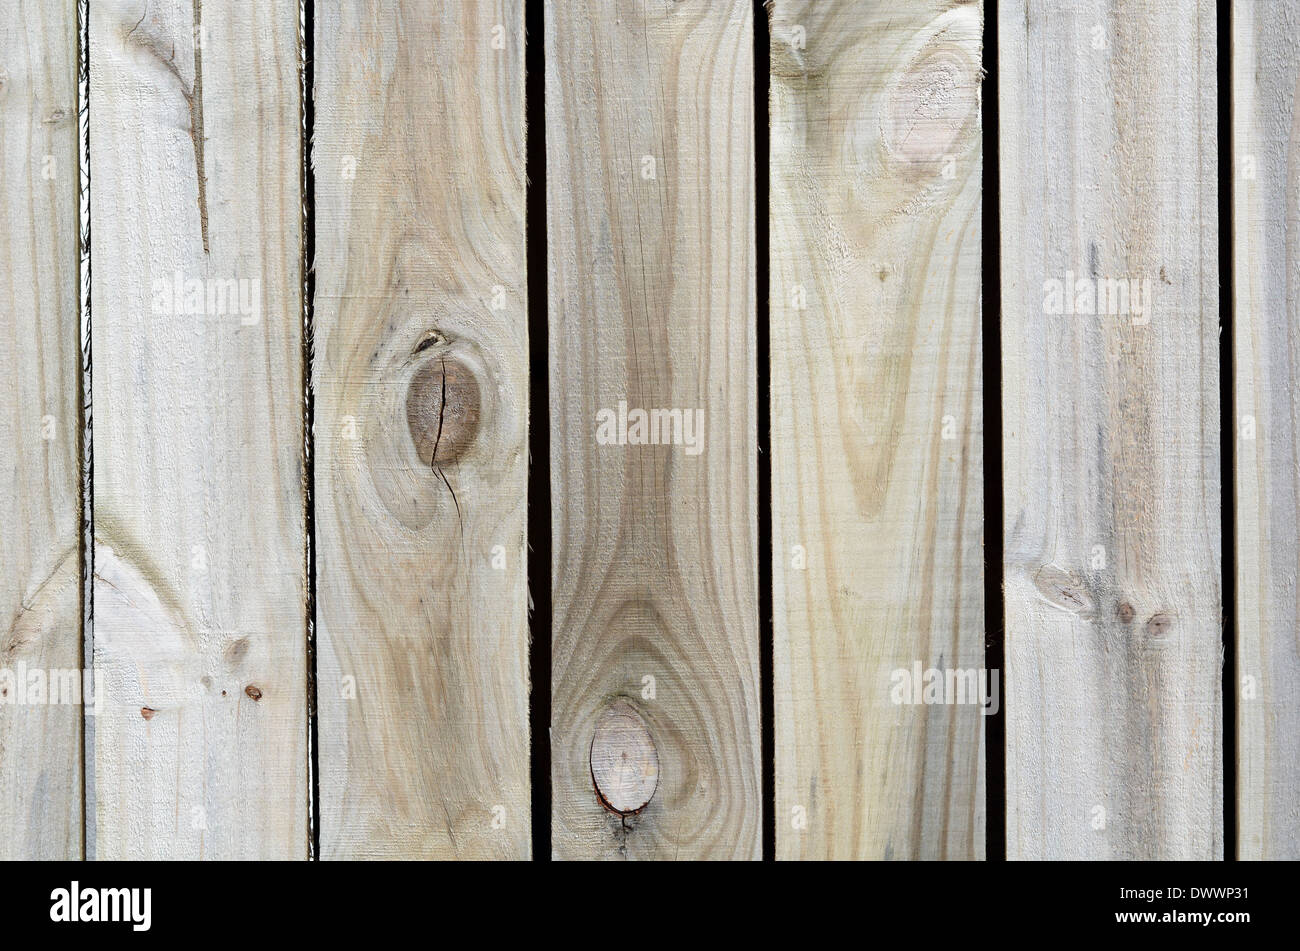 Line of empty wood planks background texture. - Stock Image